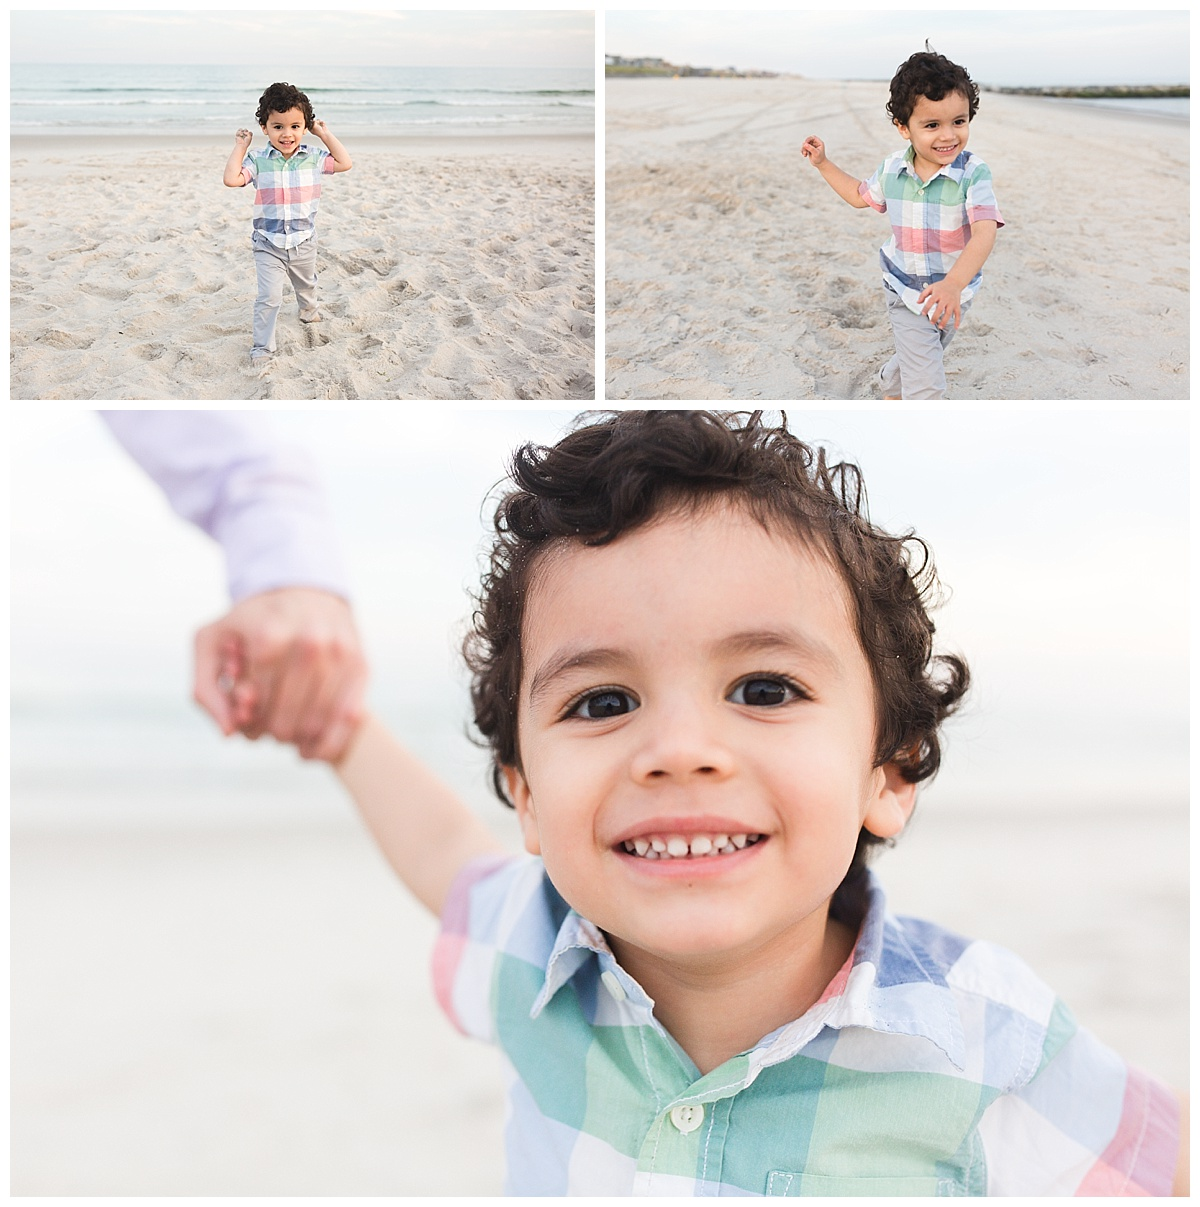 children's photographer for natural images